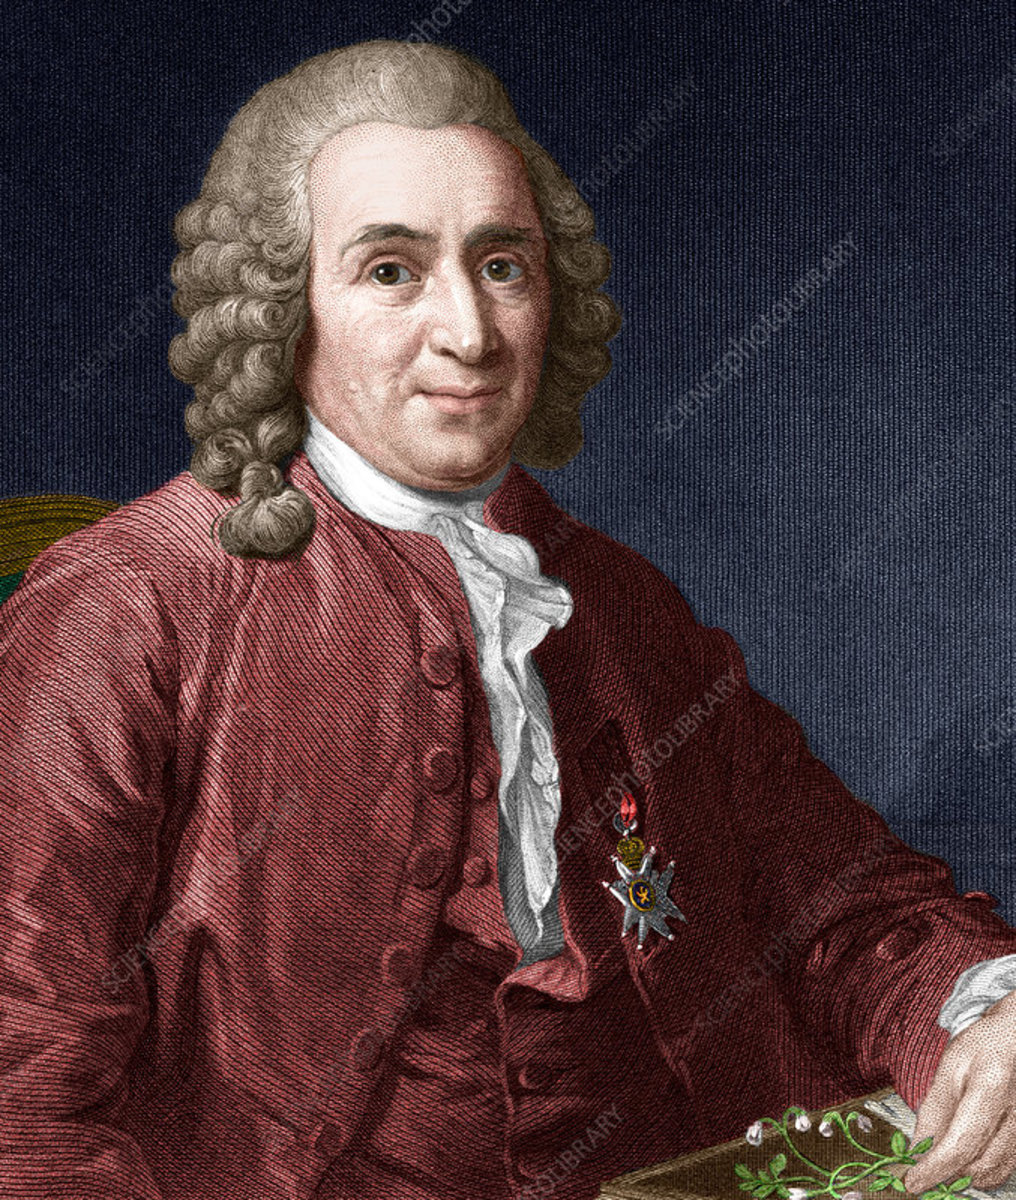 Carl Linnaeus, not only a great botanist but a pioneer in taxonomy, classification and the naming of new organisms